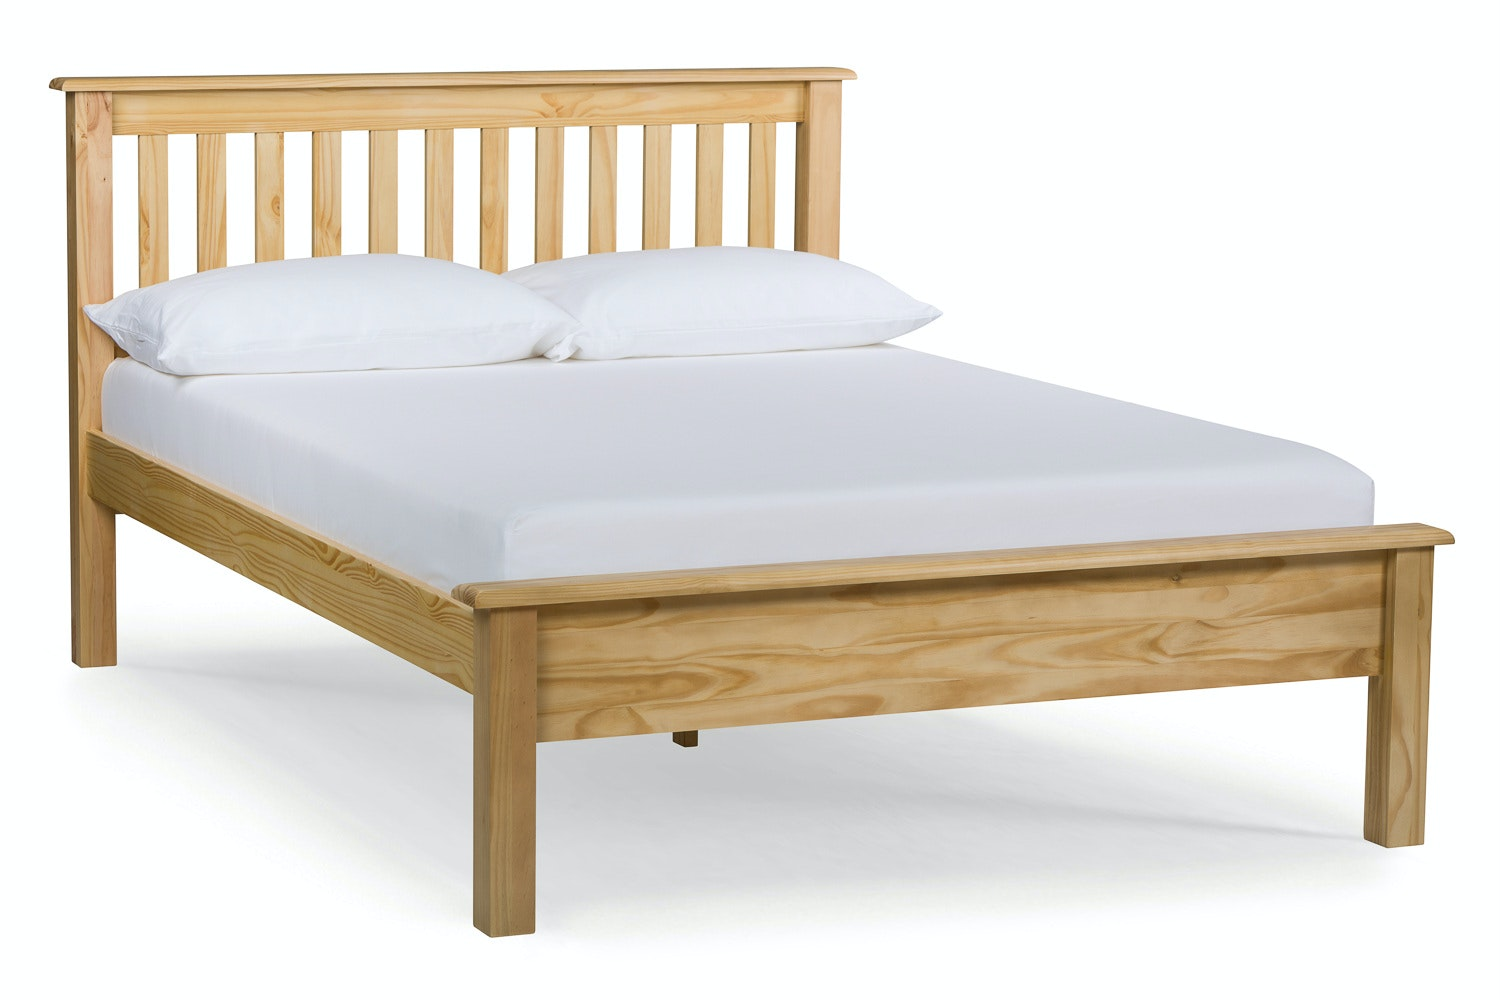 Shaker Double Bed Frame | 4ft6